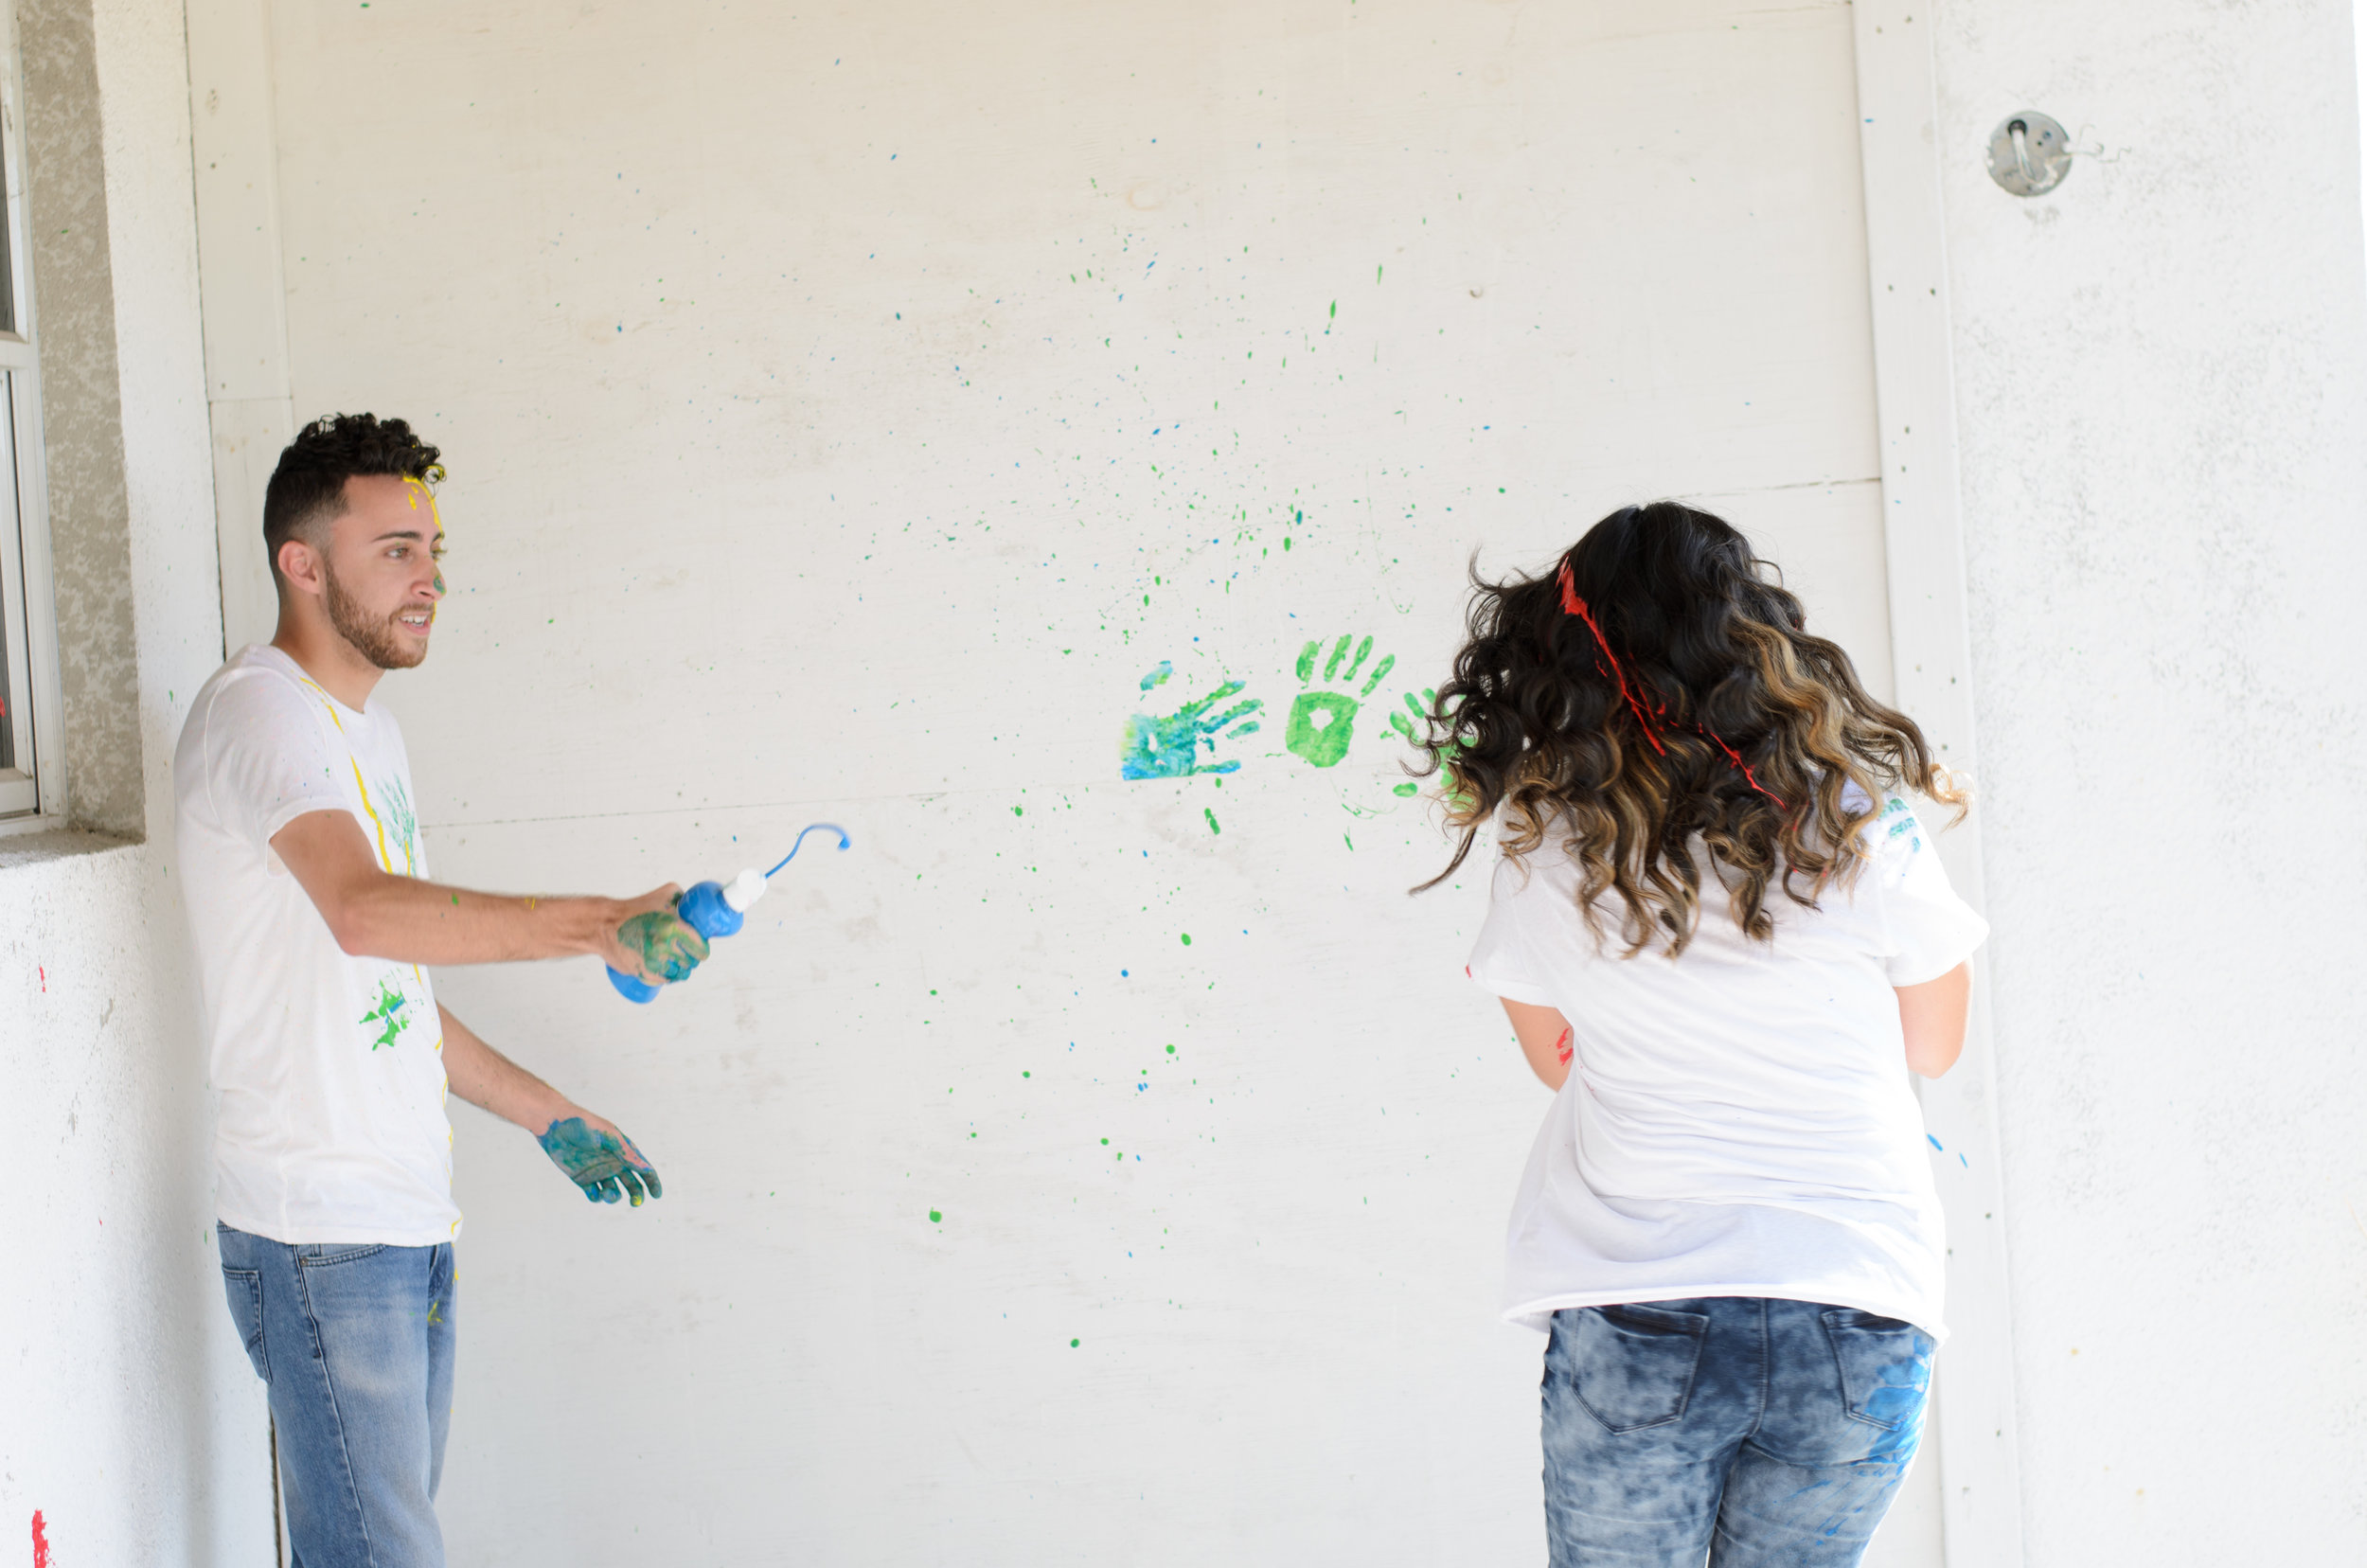 central-fl-christian-paint-war-session-7.jpg